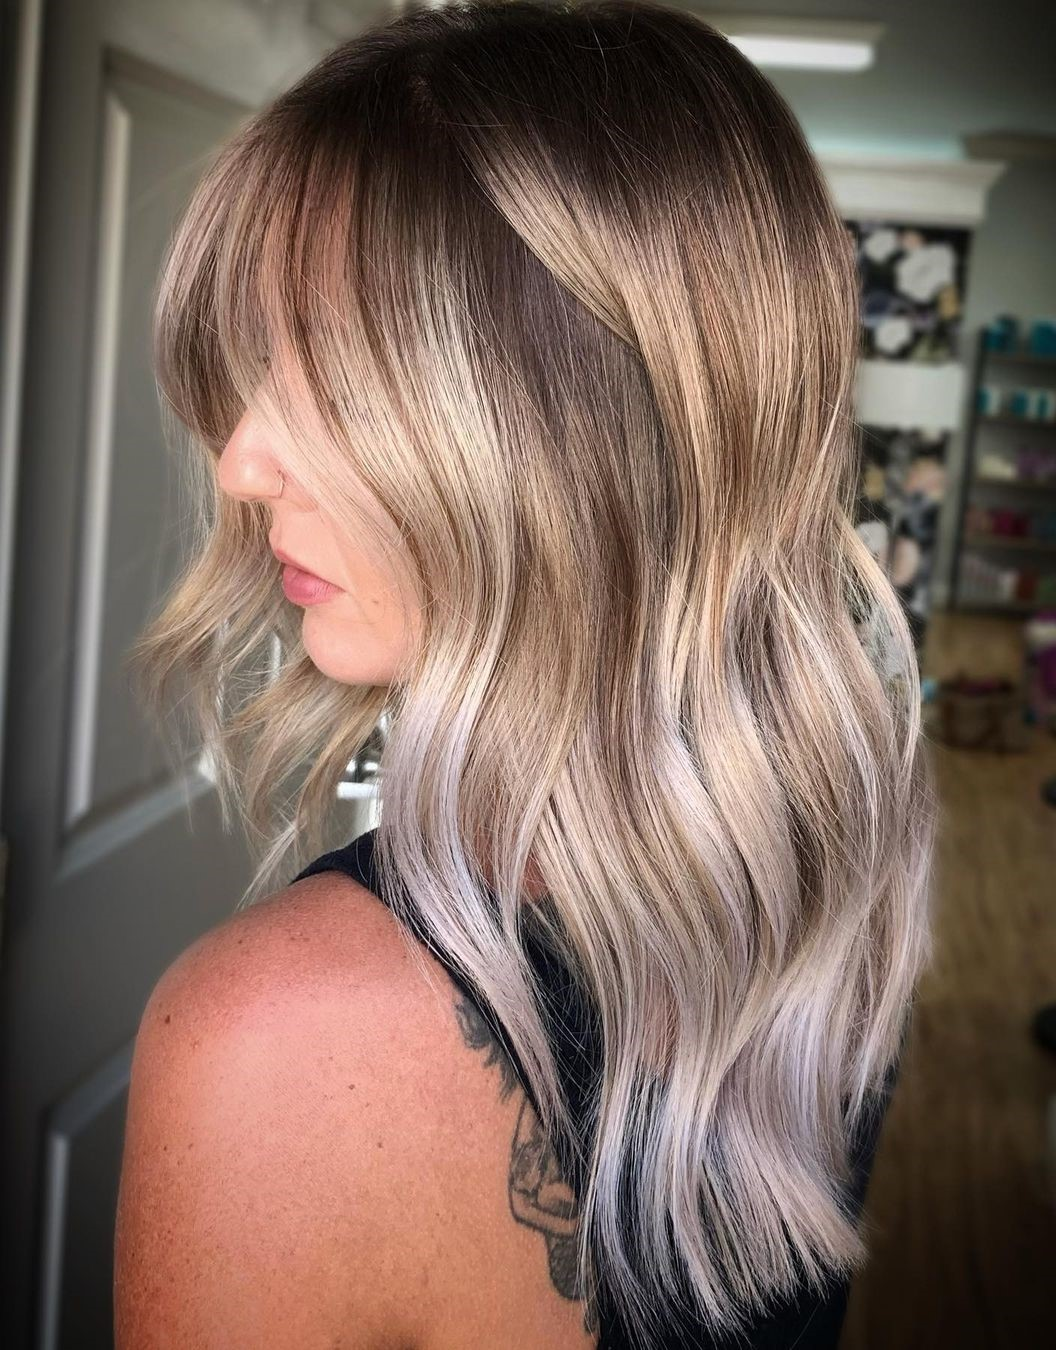 Bronde Hair with Platinum and White Highlights